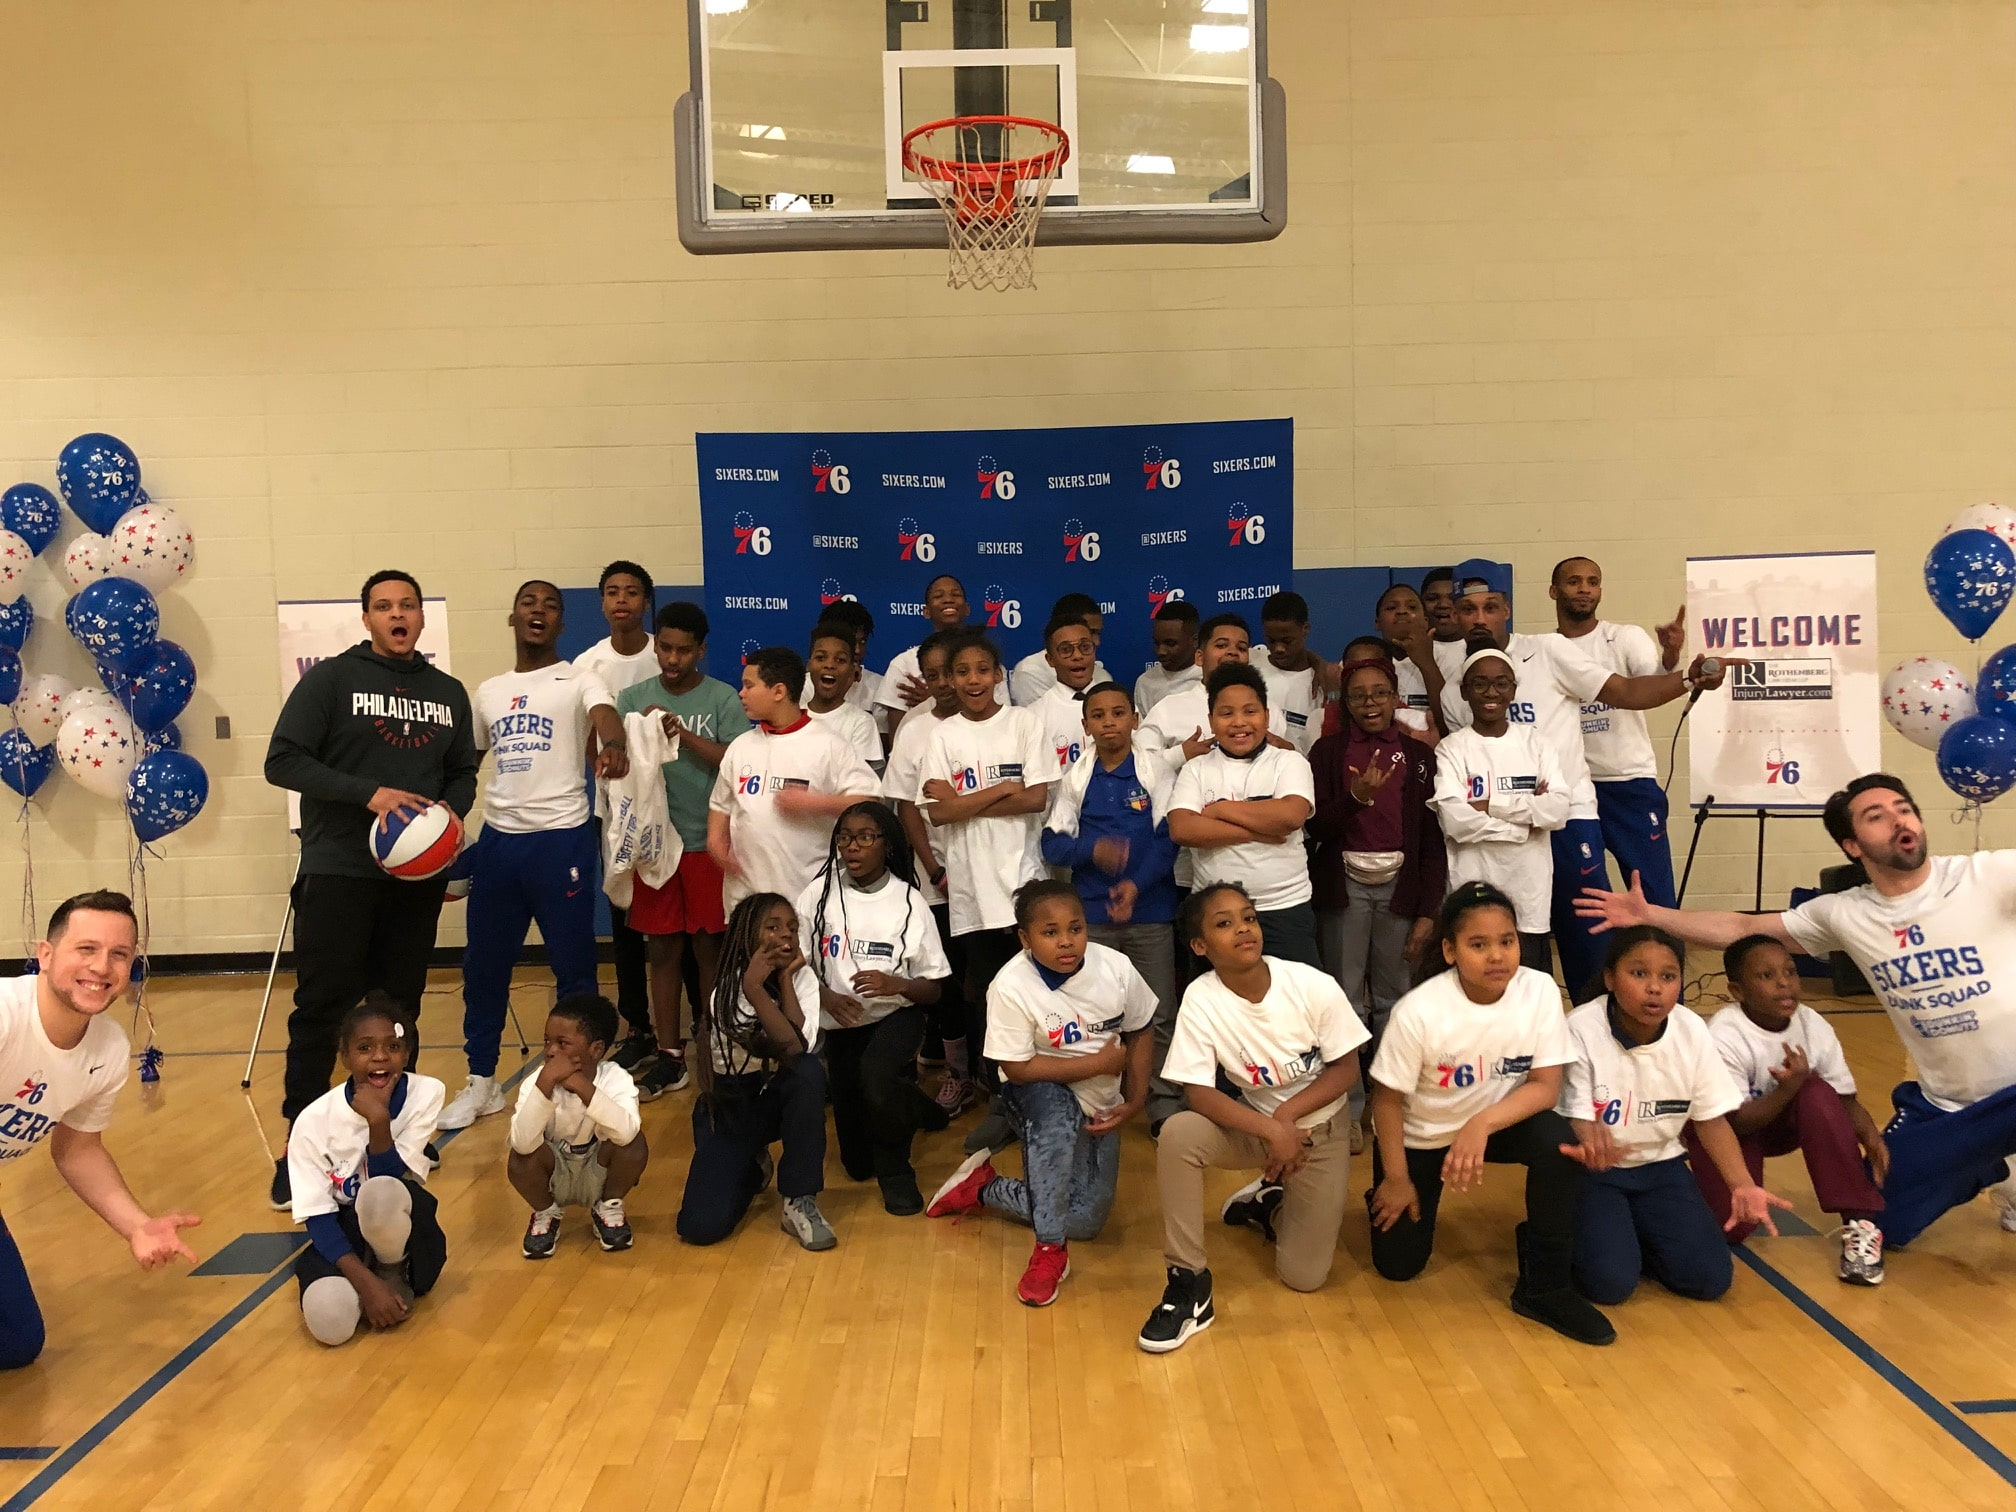 Children from the Chester, PA area pose for a picture under a basketball hoop with Philadelphia 76ers tee-shirts